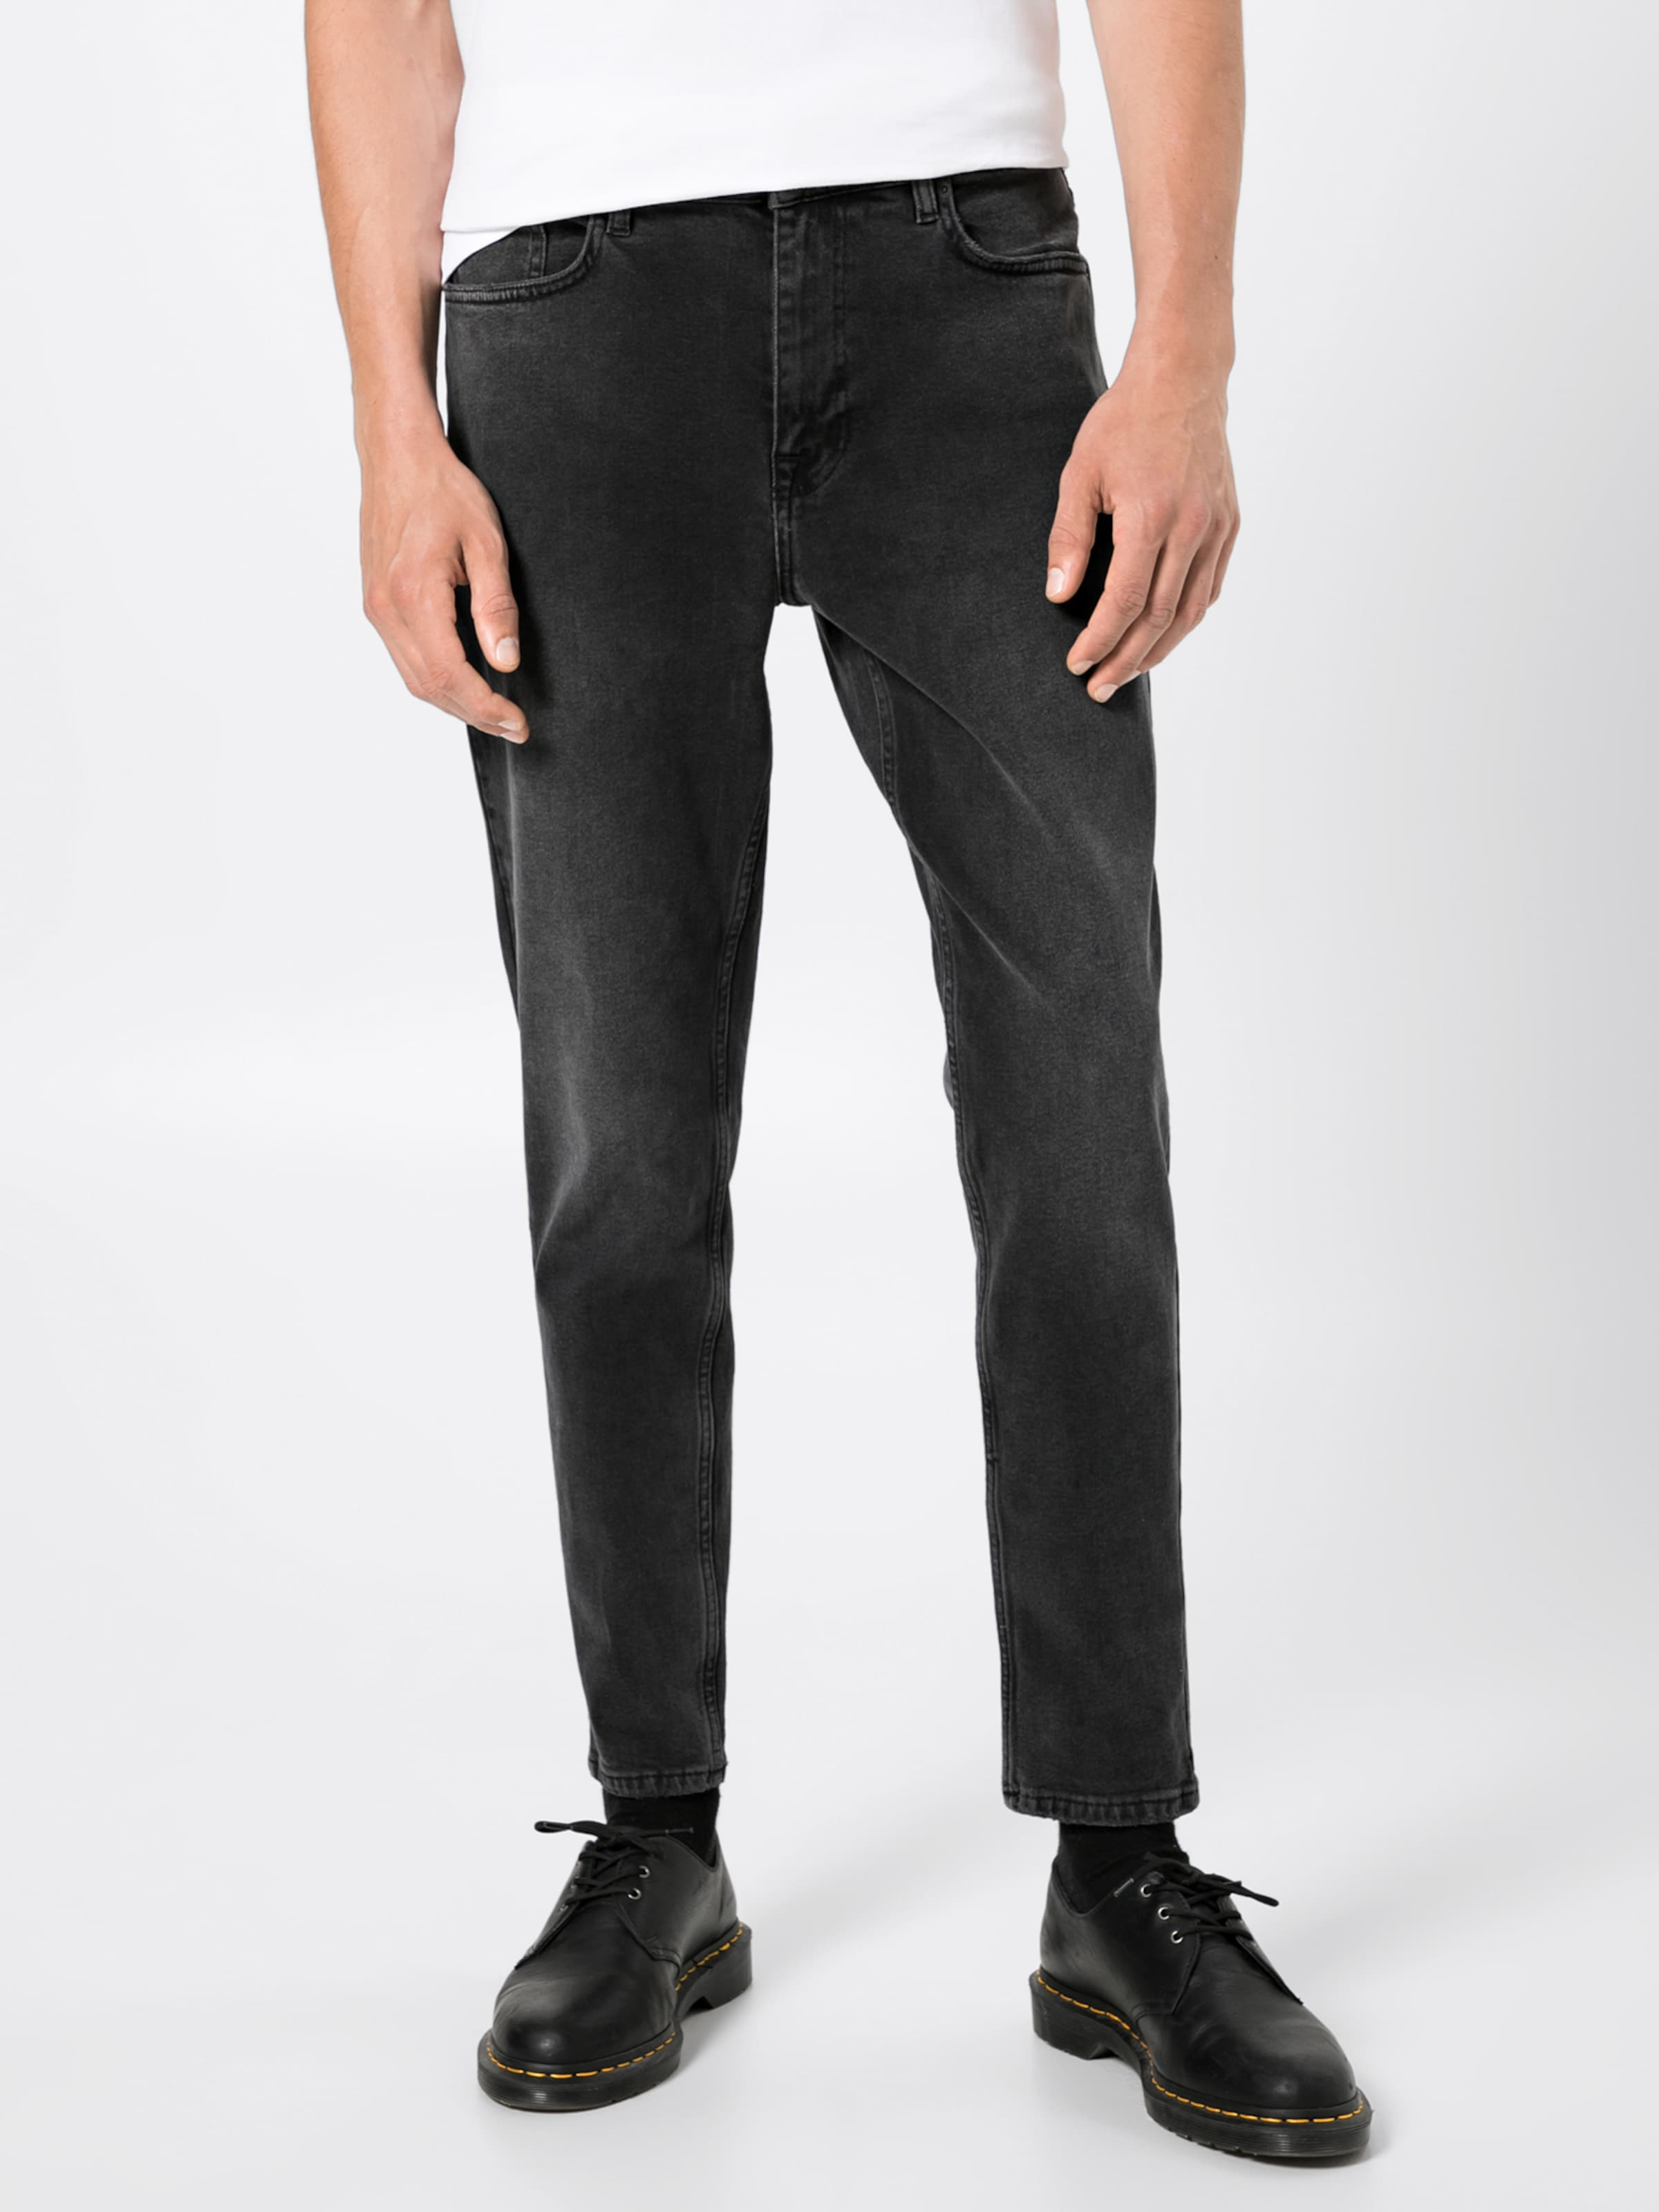 Jean Review Anthracite 'tapered Anthra' En hQxrdtsC